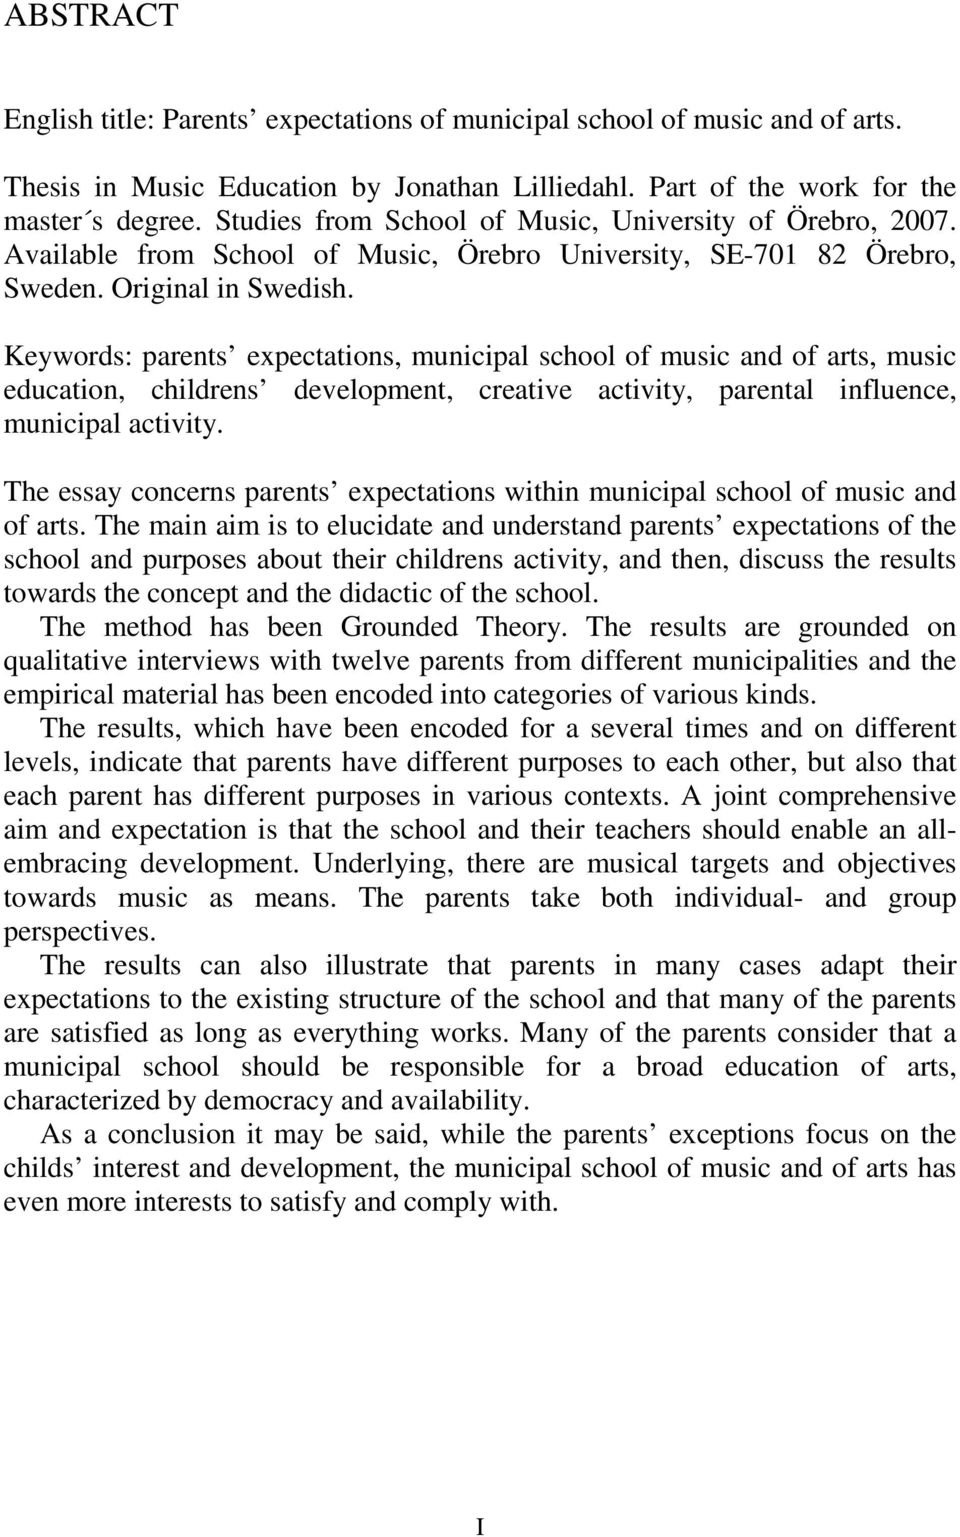 Keywords: parents expectations, municipal school of music and of arts, music education, childrens development, creative activity, parental influence, municipal activity.